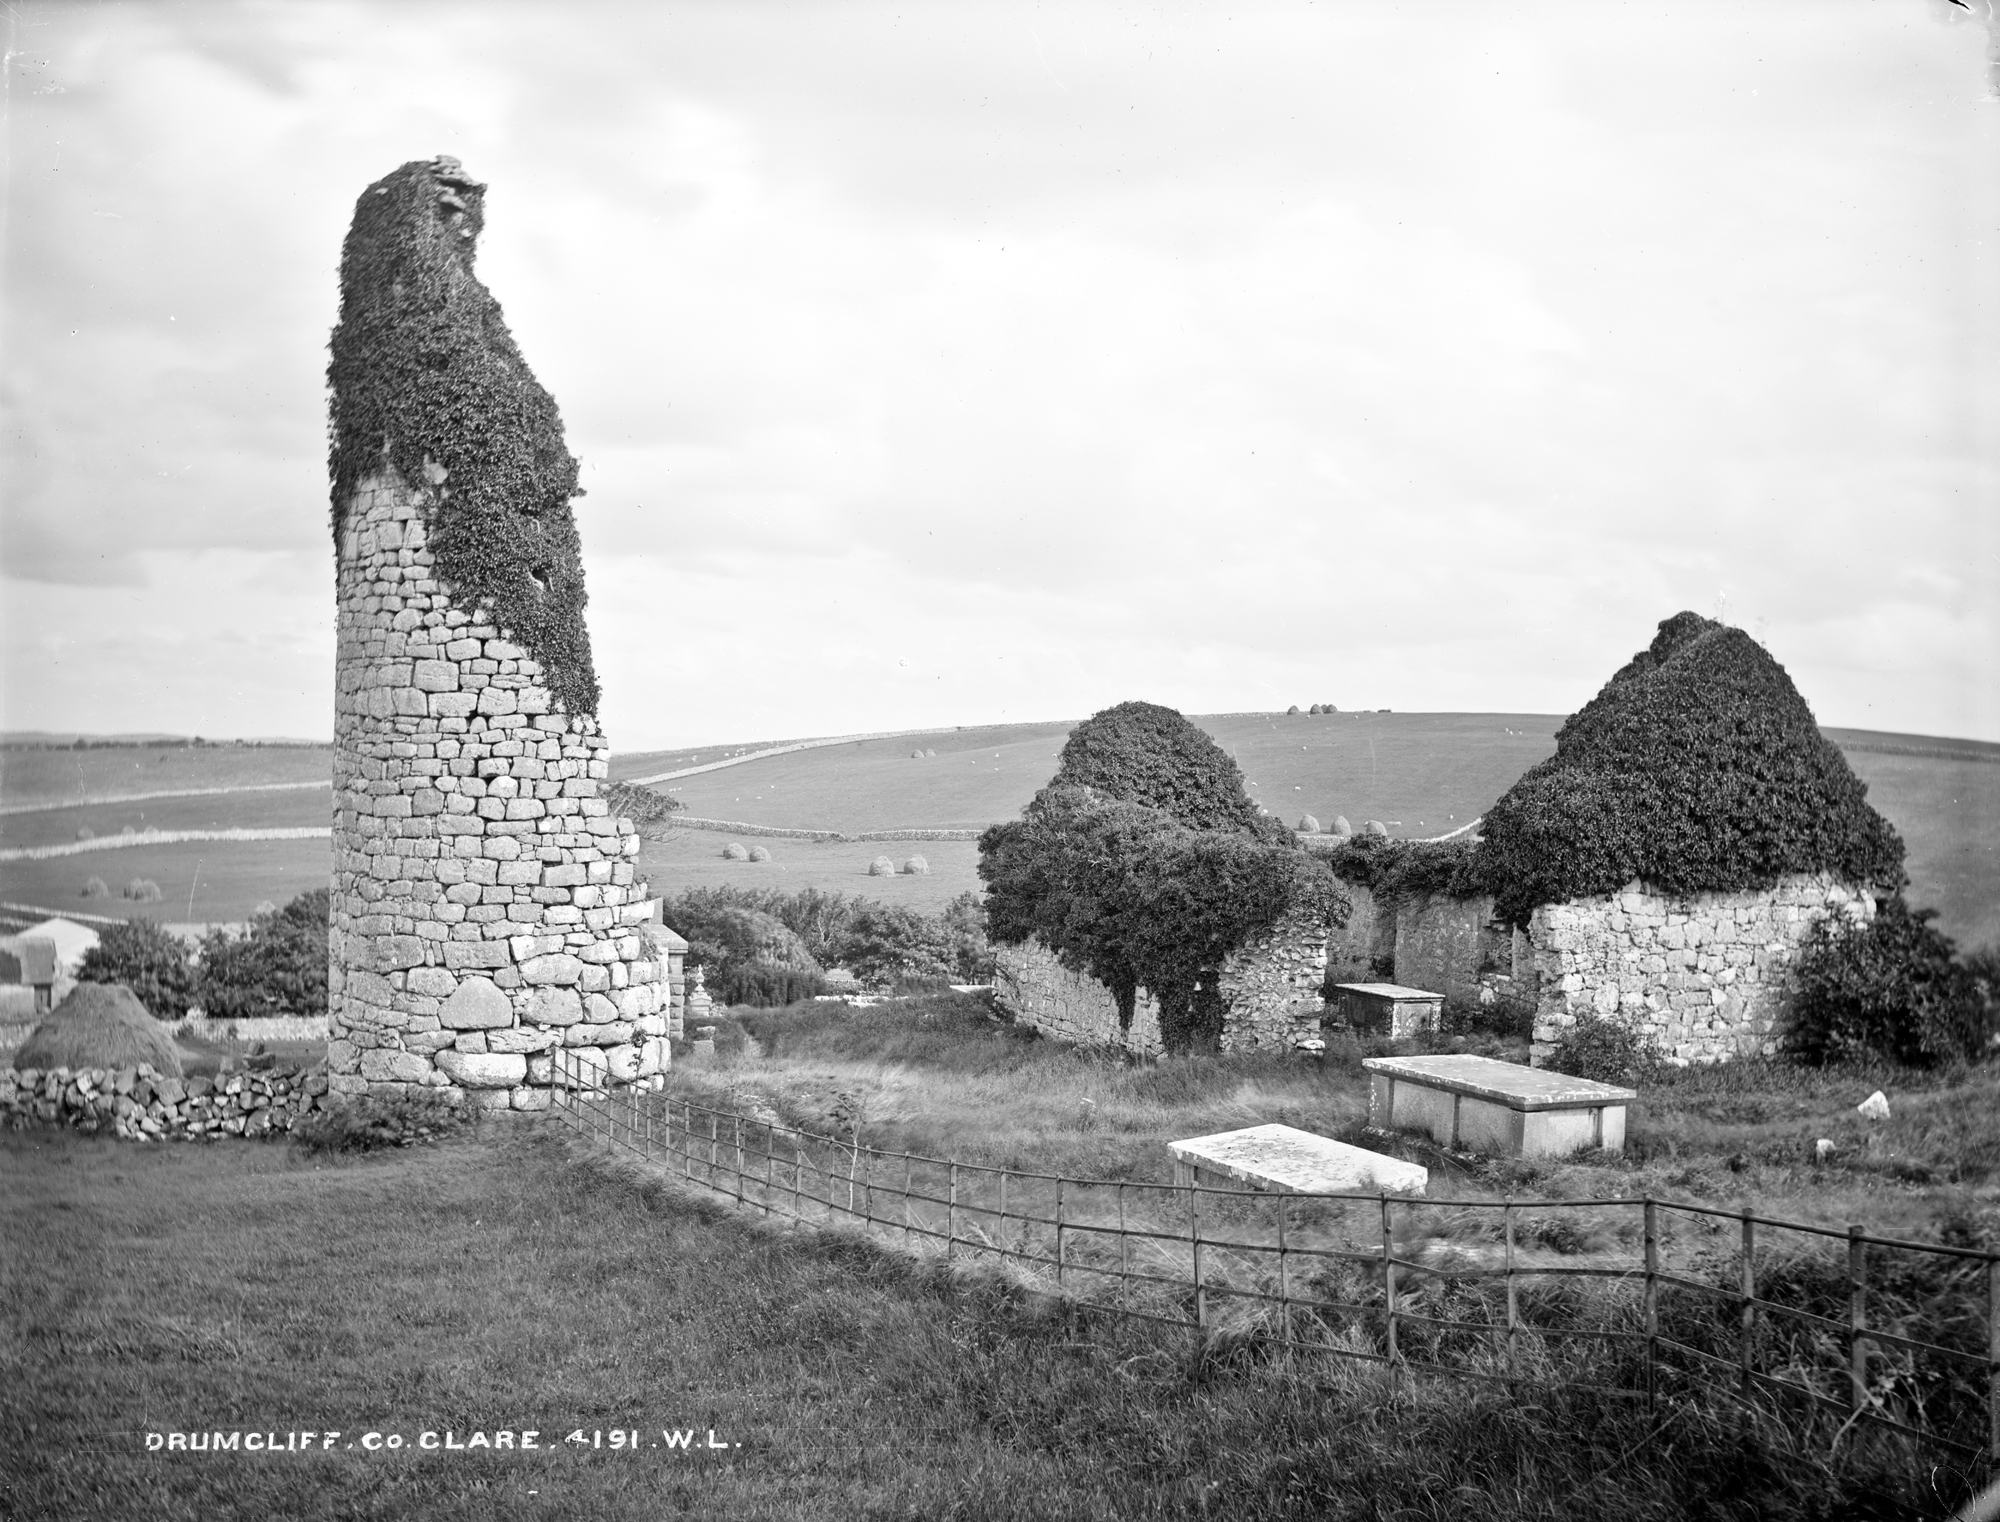 Drumcliffe, Co. Clare